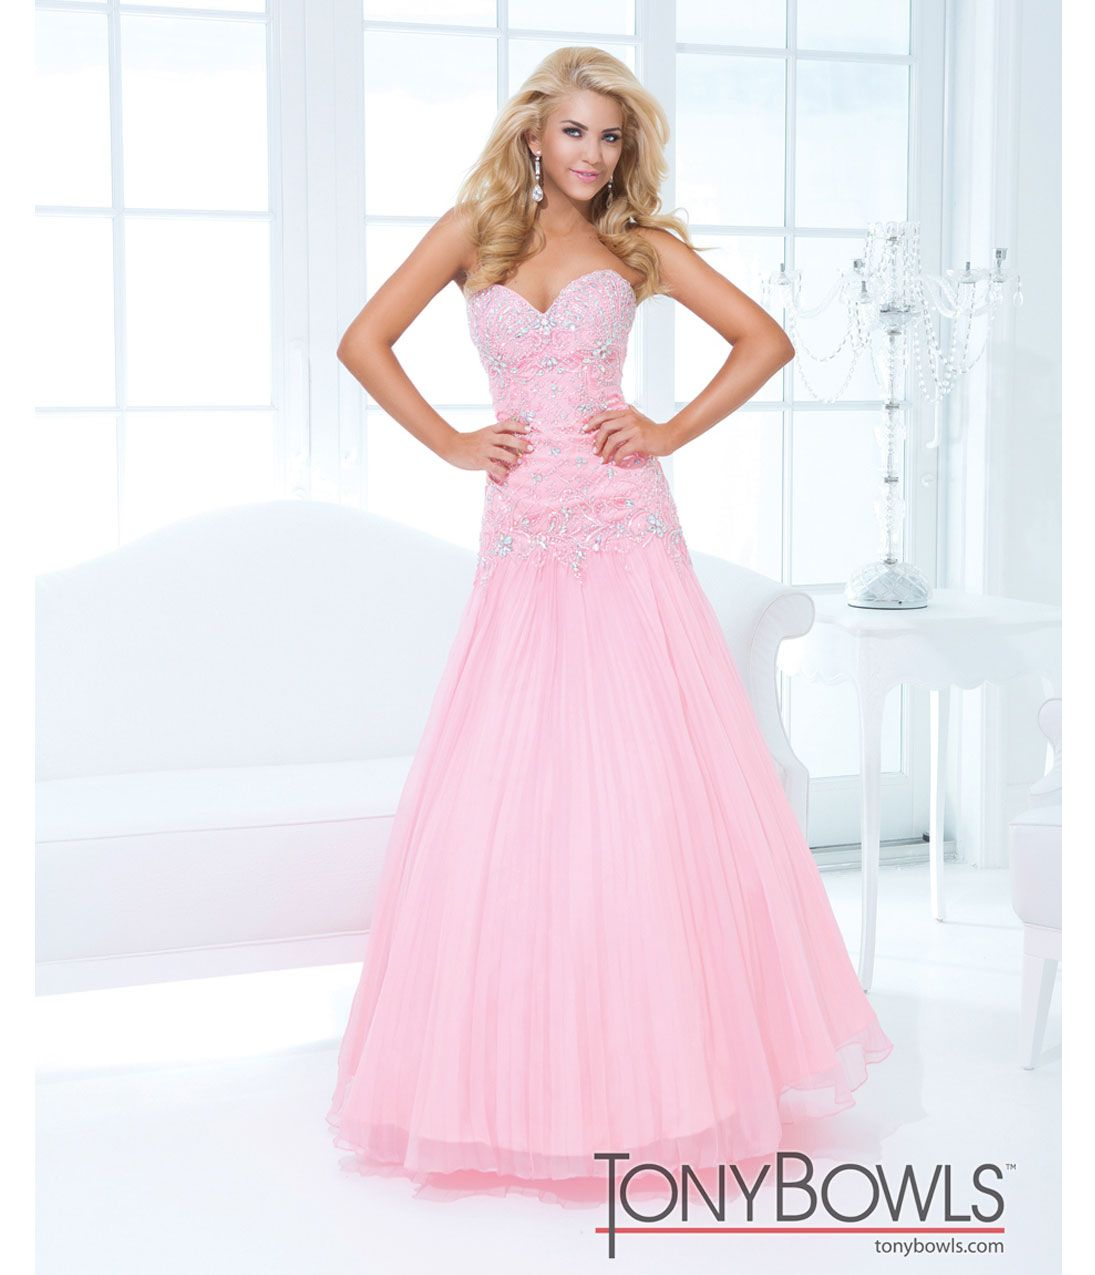 pink prom dresses - Google Search | dressed up | Pinterest ...